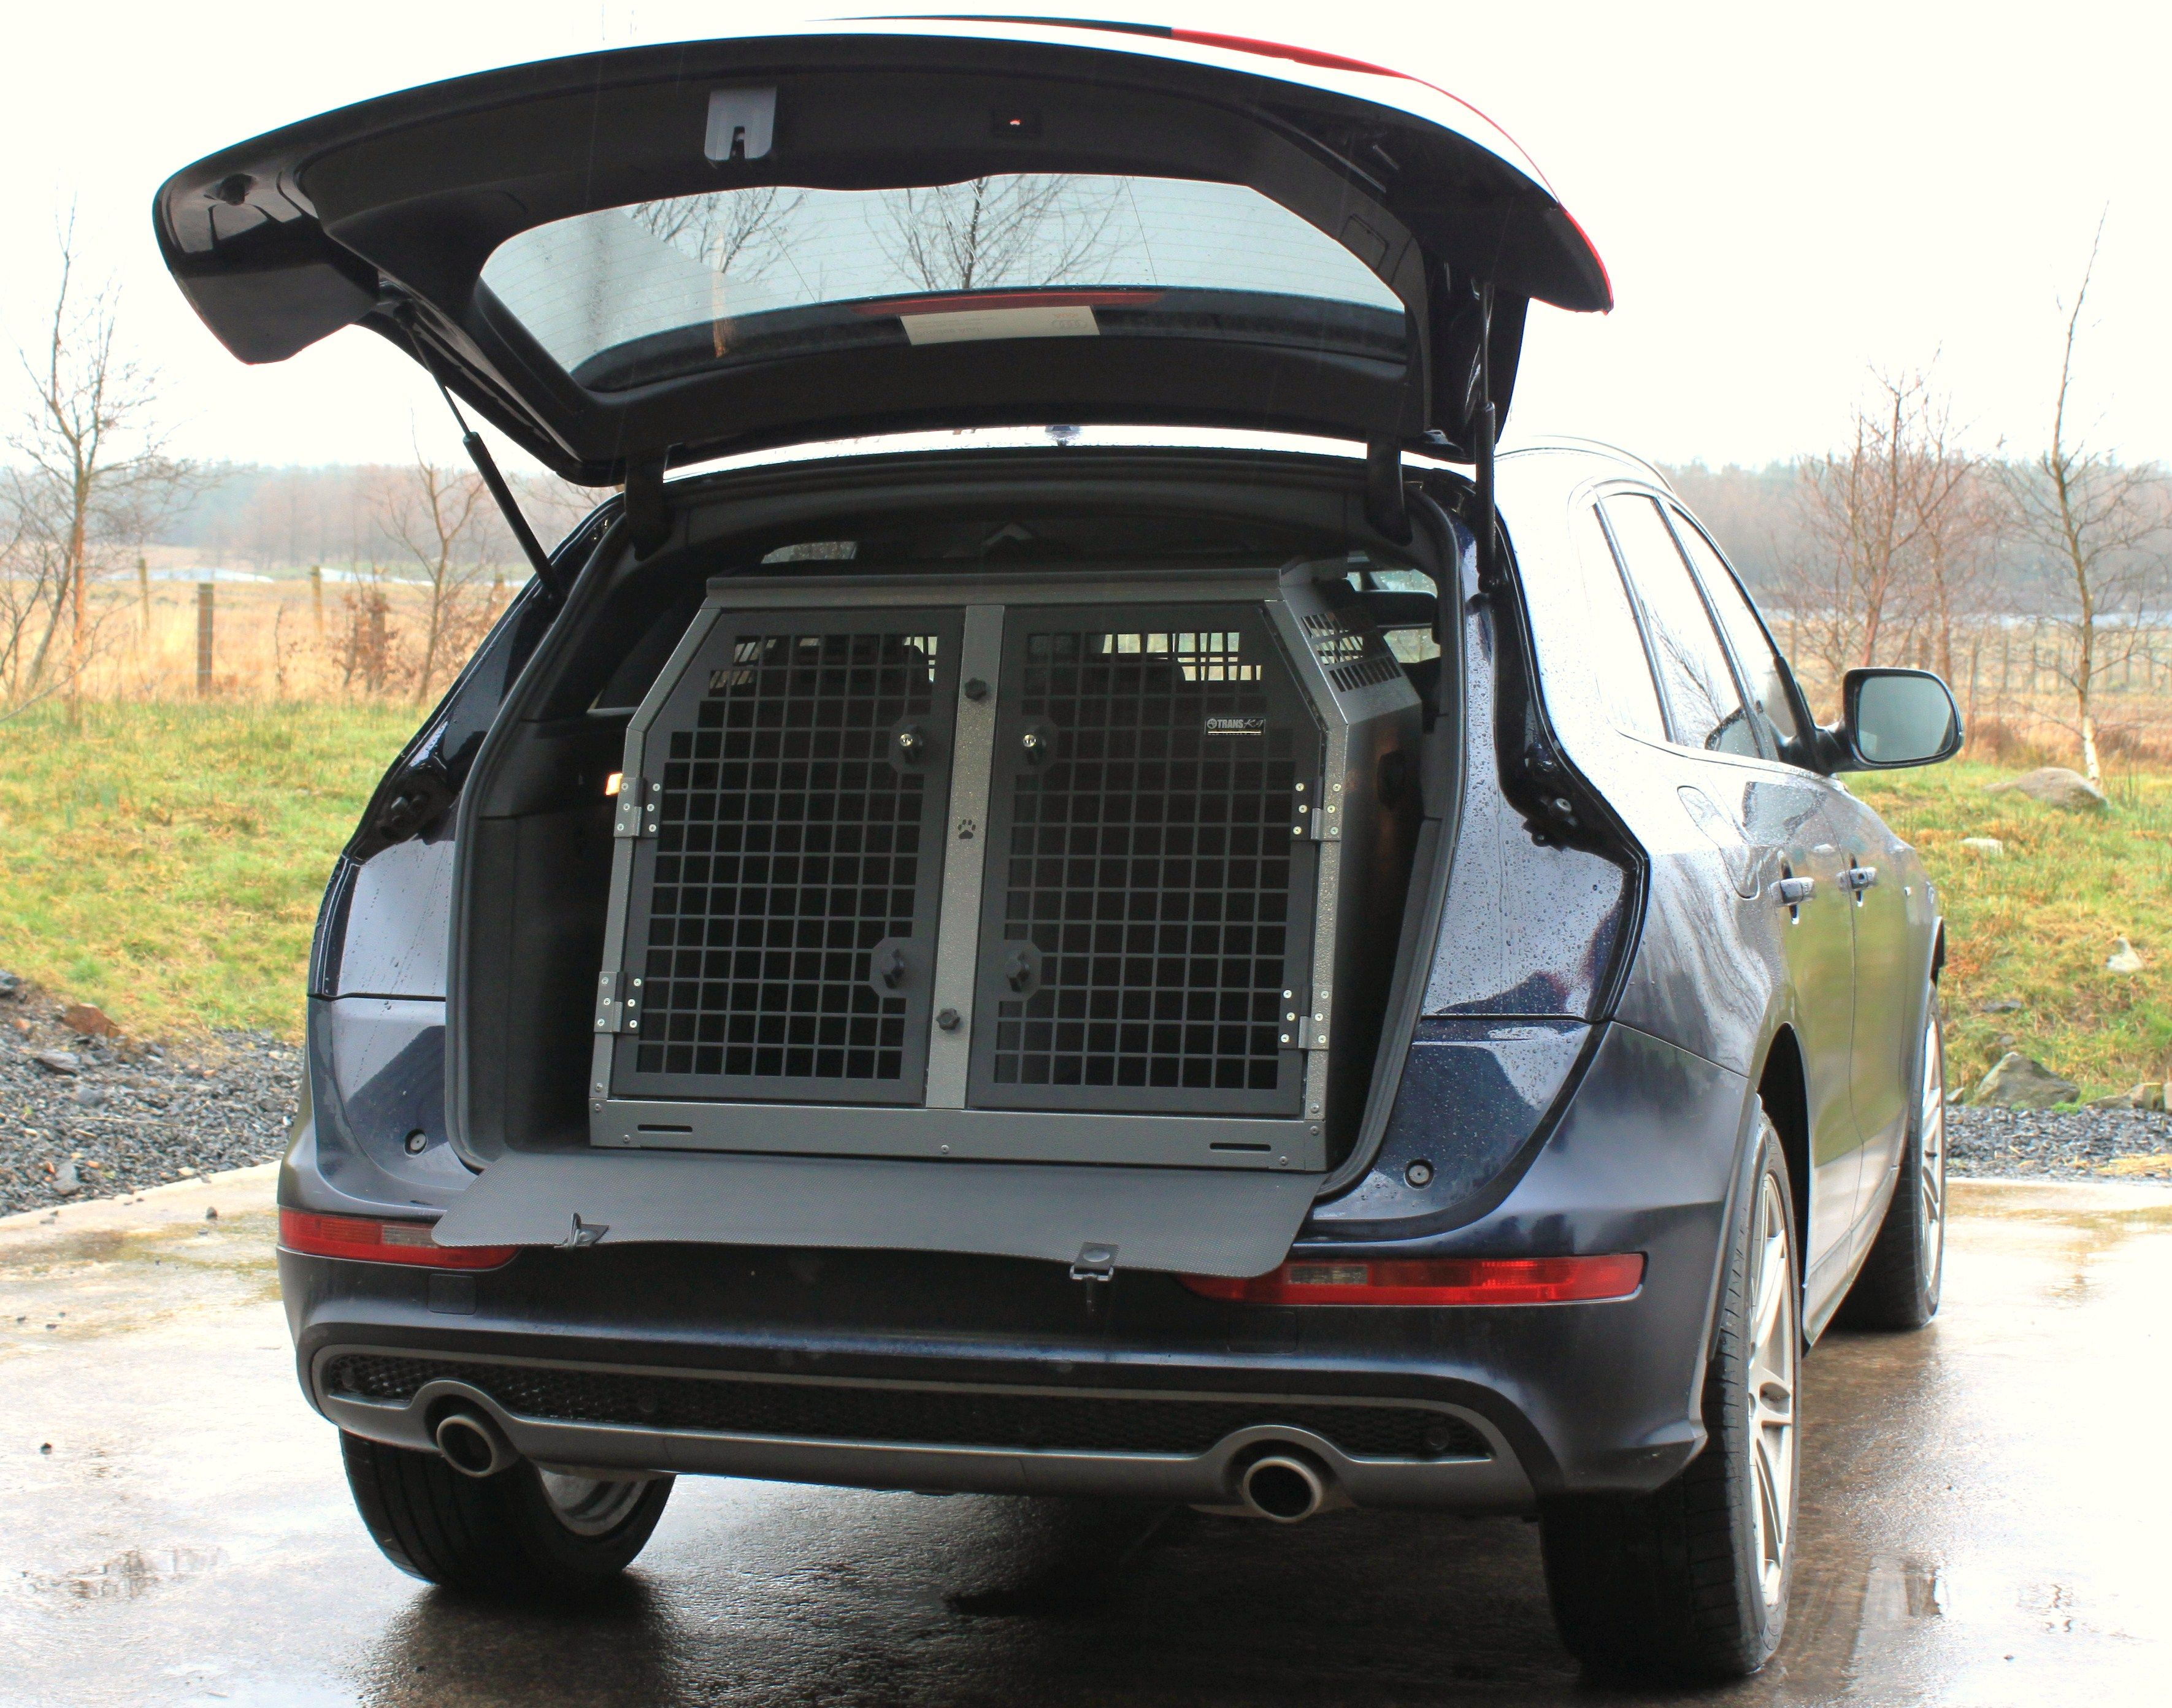 170dba2f487c8466c3cb55e40124f788 Take A Look About Jeep Dog Accessories with Captivating Gallery Cars Review